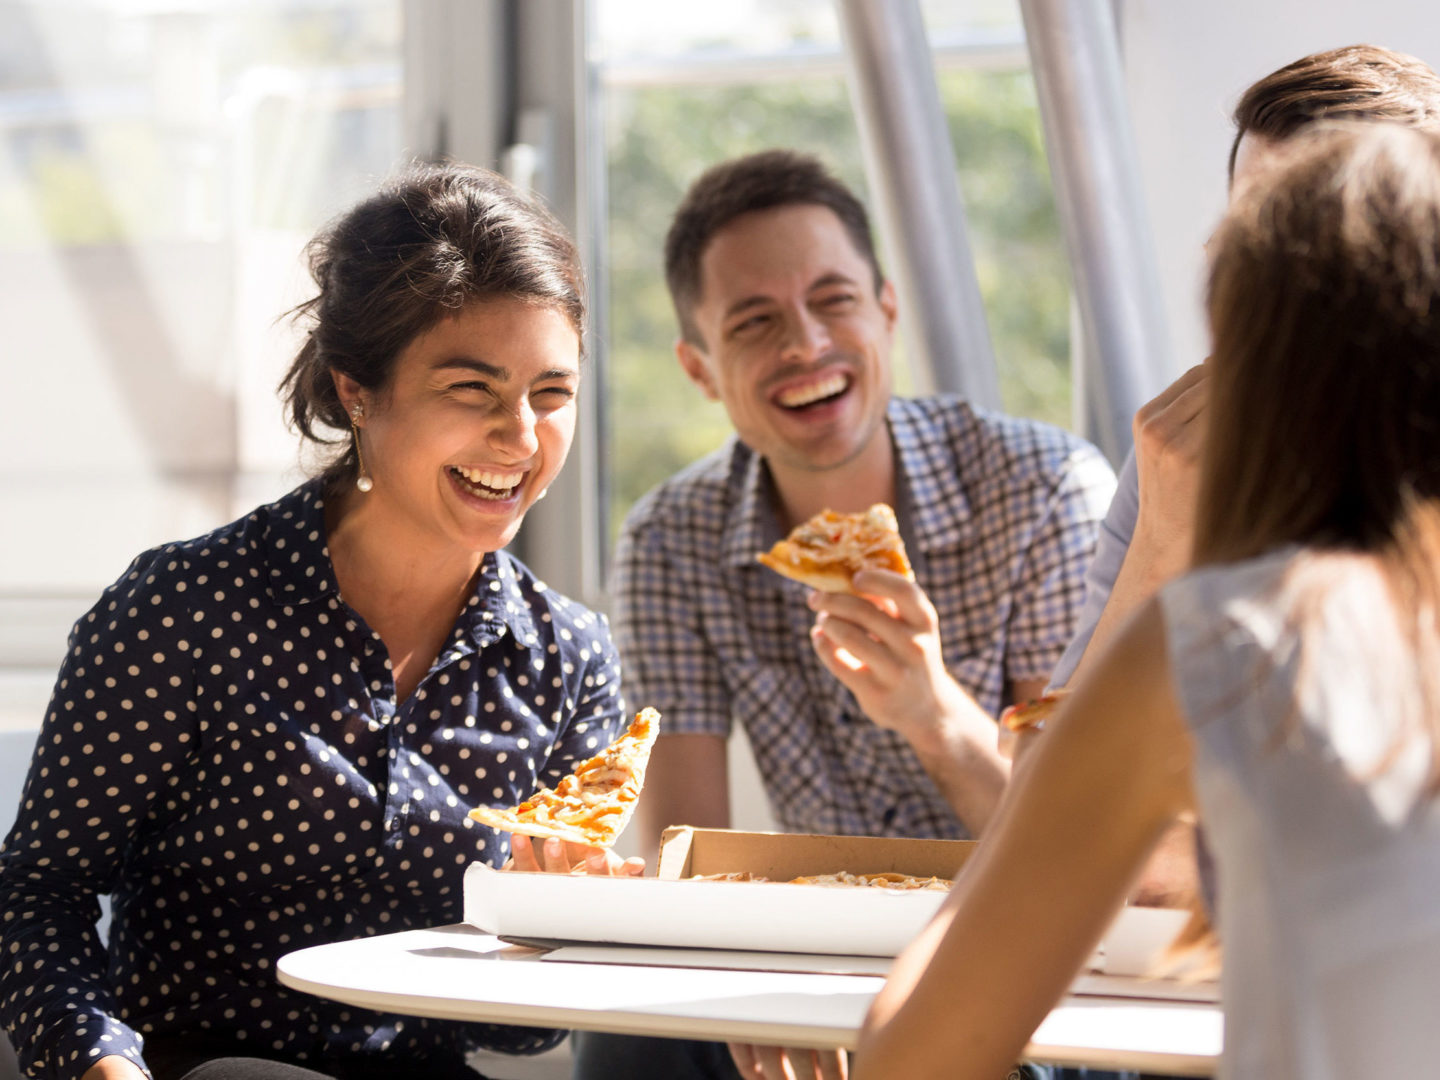 Indian woman laughing, eating pizza with colleagues in office